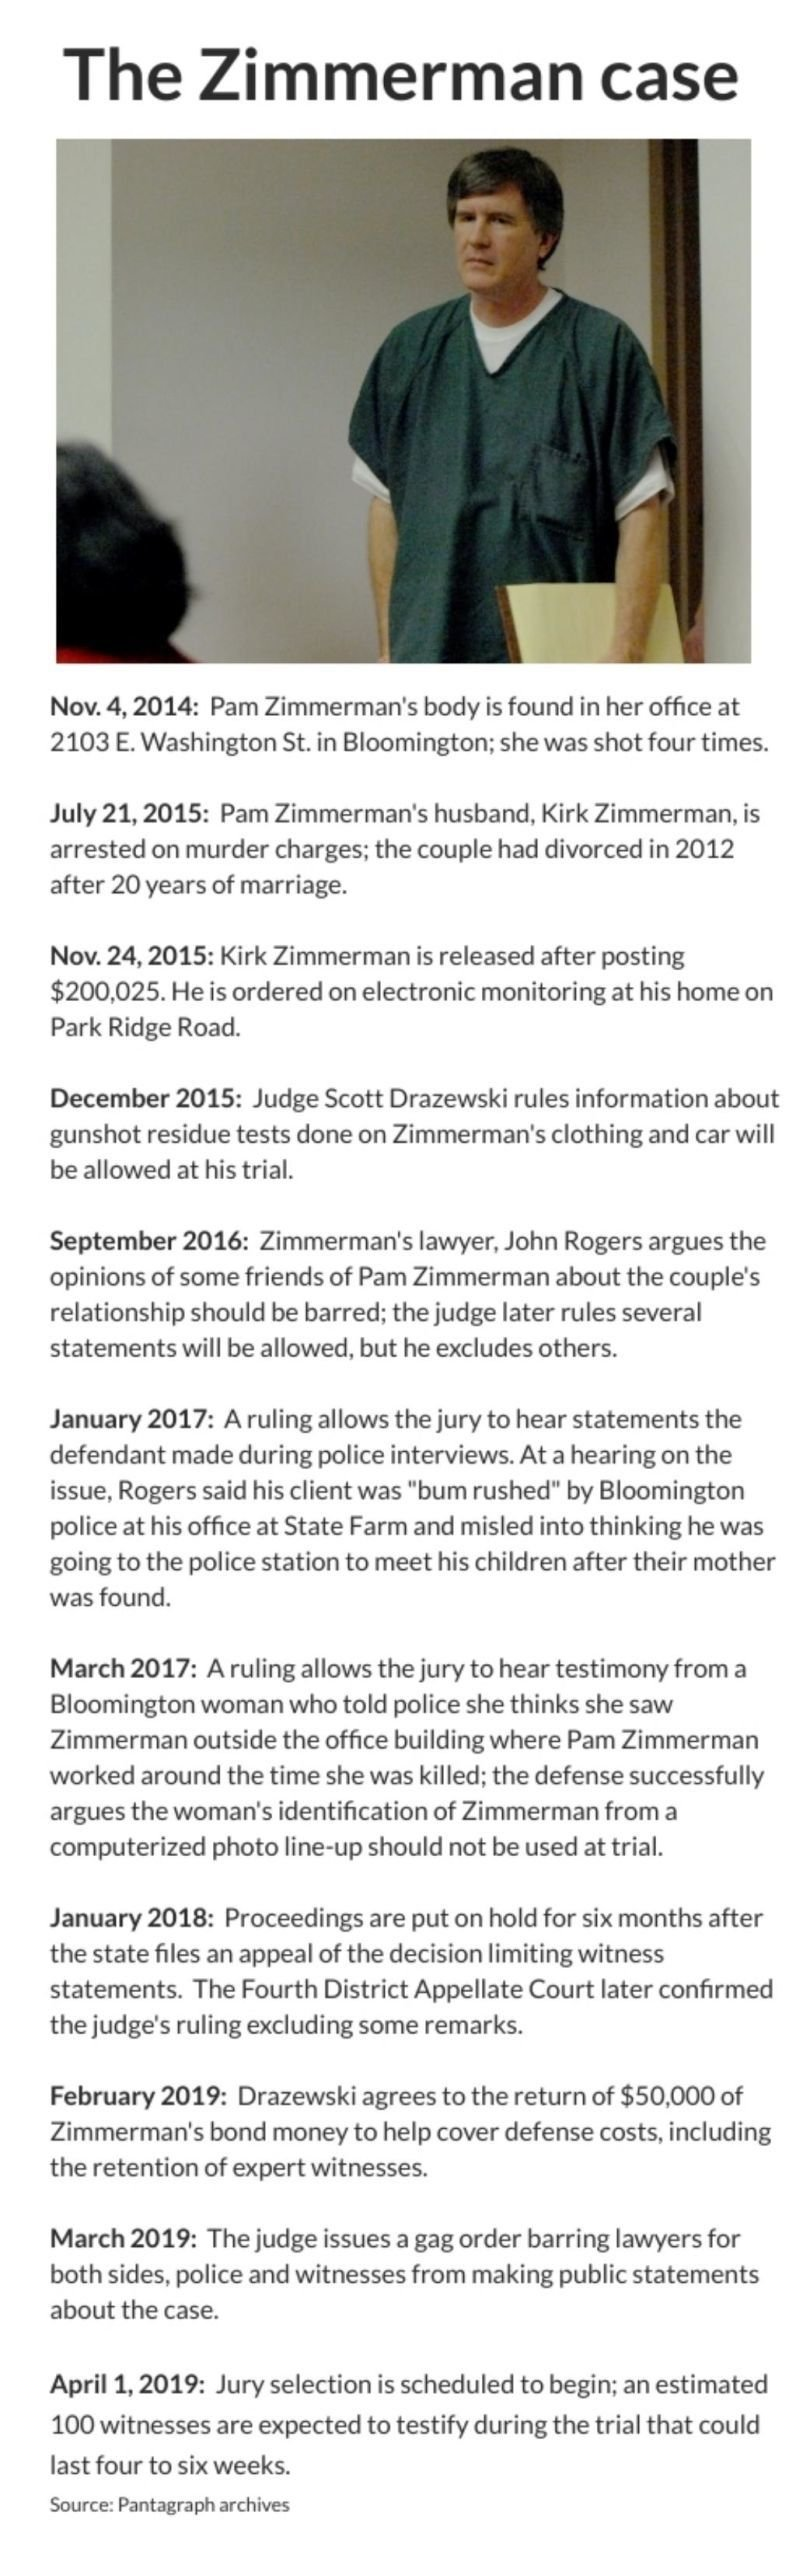 The Zimmerman case